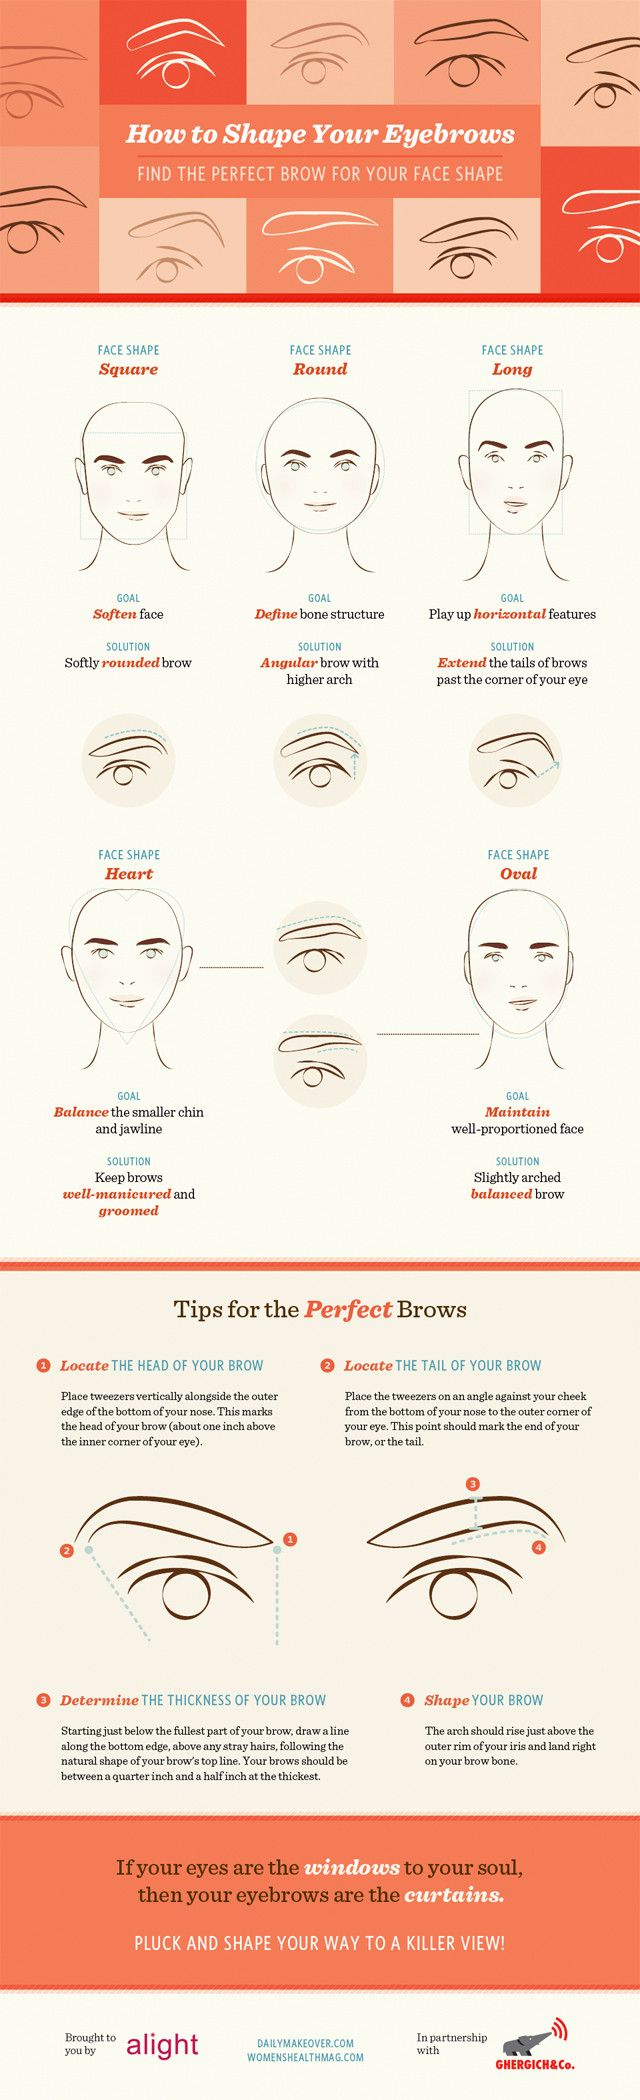 Infographic: How to Shape Your Eyebrows #infographic